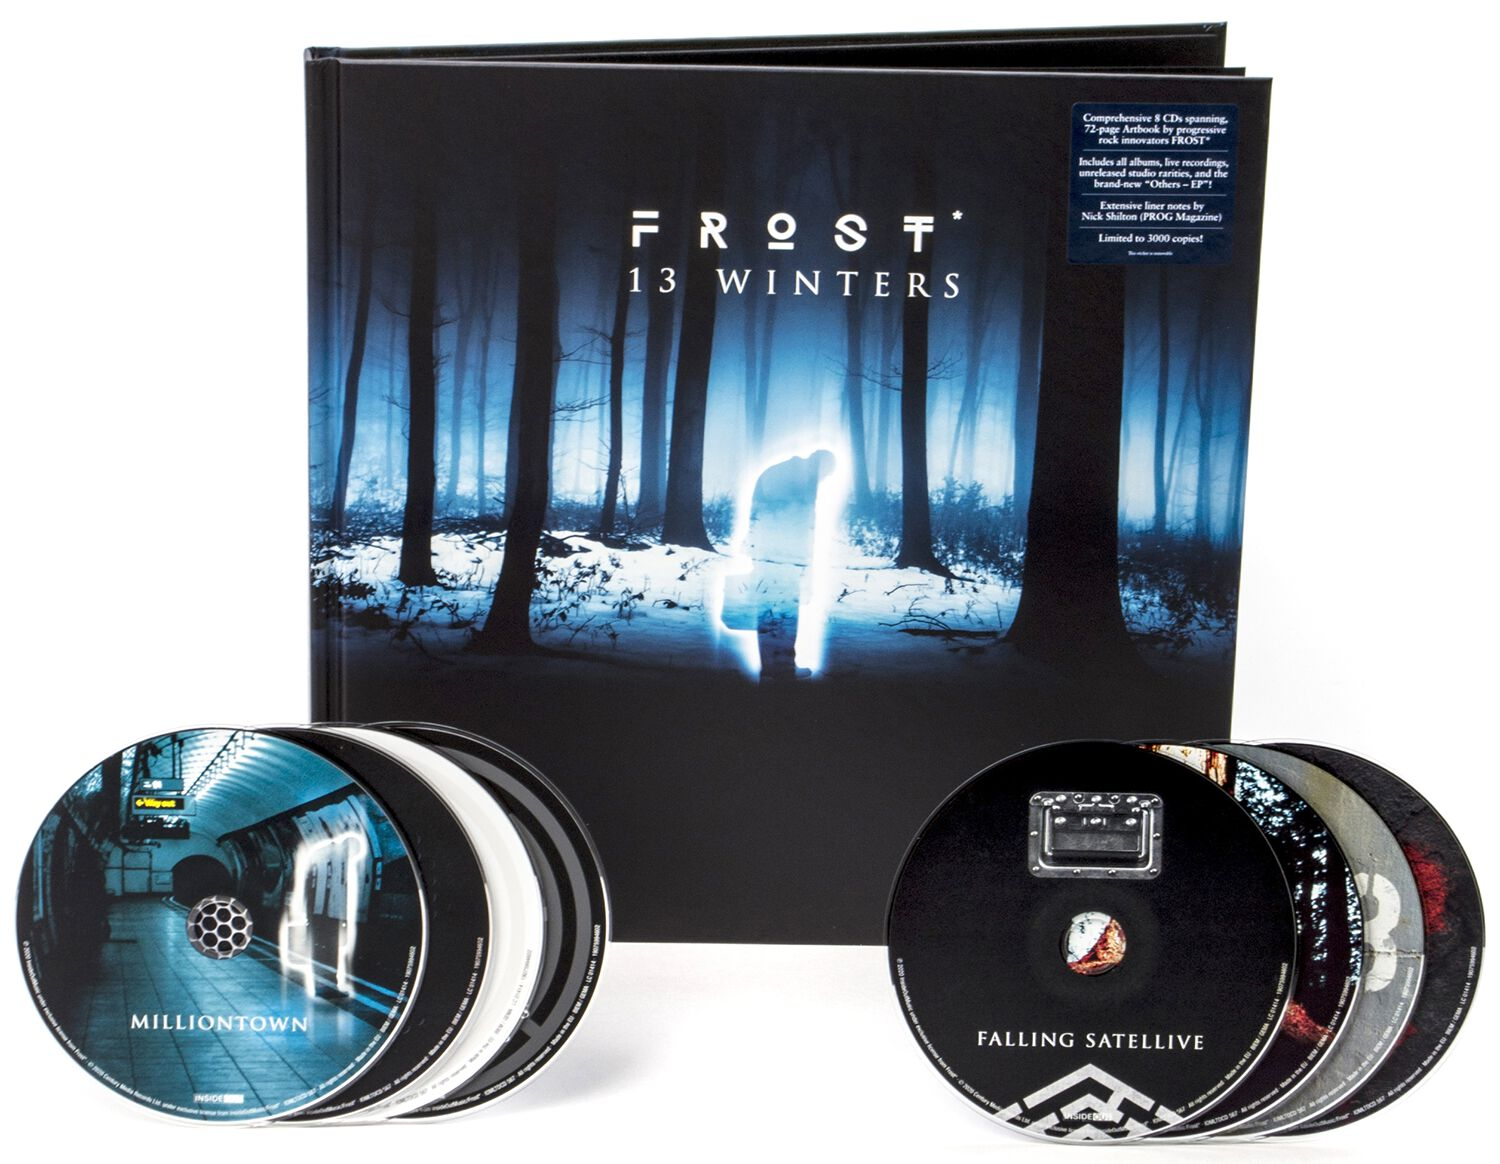 Image of Frost* 13 winters 8-CD Standard